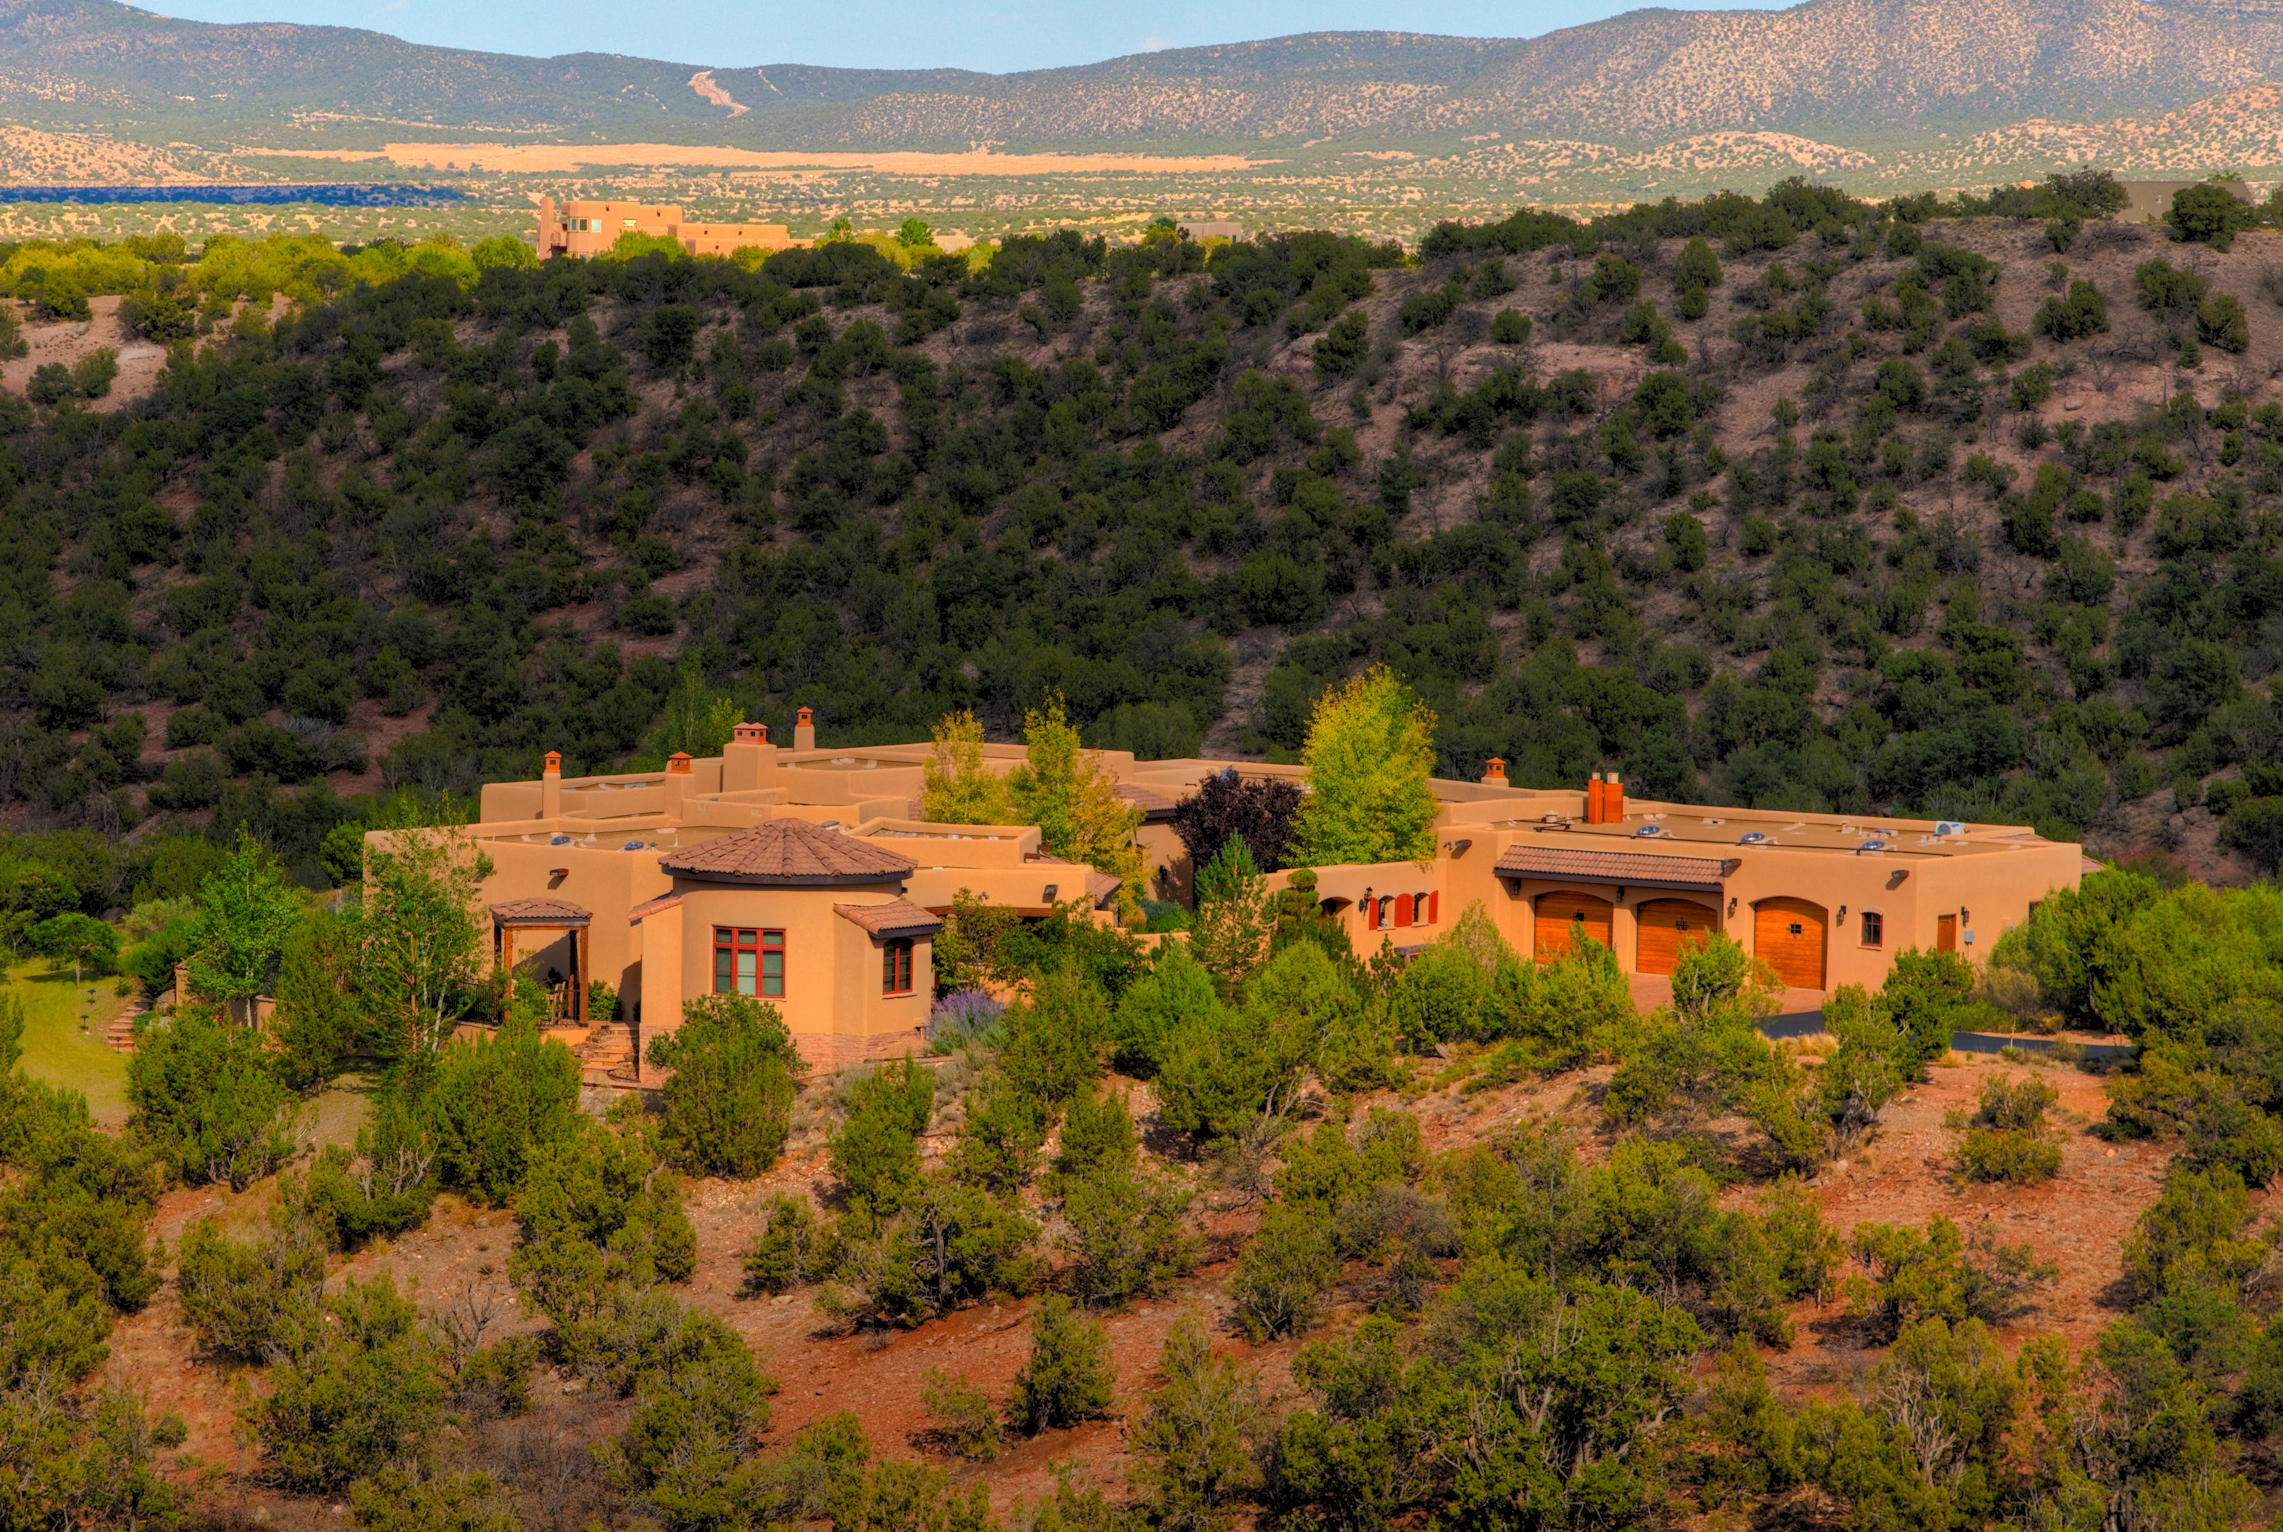 Prepare to be AWESTRUCK with this one of a kind luxury estate situated directly on 2,000 acres of eternal open space overlooking the magnificent red-rock canyon. A gated paved driveway & a stunning Bison sculpture greet you and lead you down towards your extremely private 6,055 sqft piece of paradise, equipped with its own look out tower, allowing one to fully immerse in the picturesque scenery which lavish this home. Immaculately maintained, the craftsmanship in this home will leave you in amazement, from imported 150 year old white oak reclaimed beams, custom made sconces & light fixtures, imported tile, Mahogany wood cabinets & doors including garage, along with hand troweled diamond finish plaster walls just to name a few. The Master Suite is a true haven and is comprised of 5 rooms